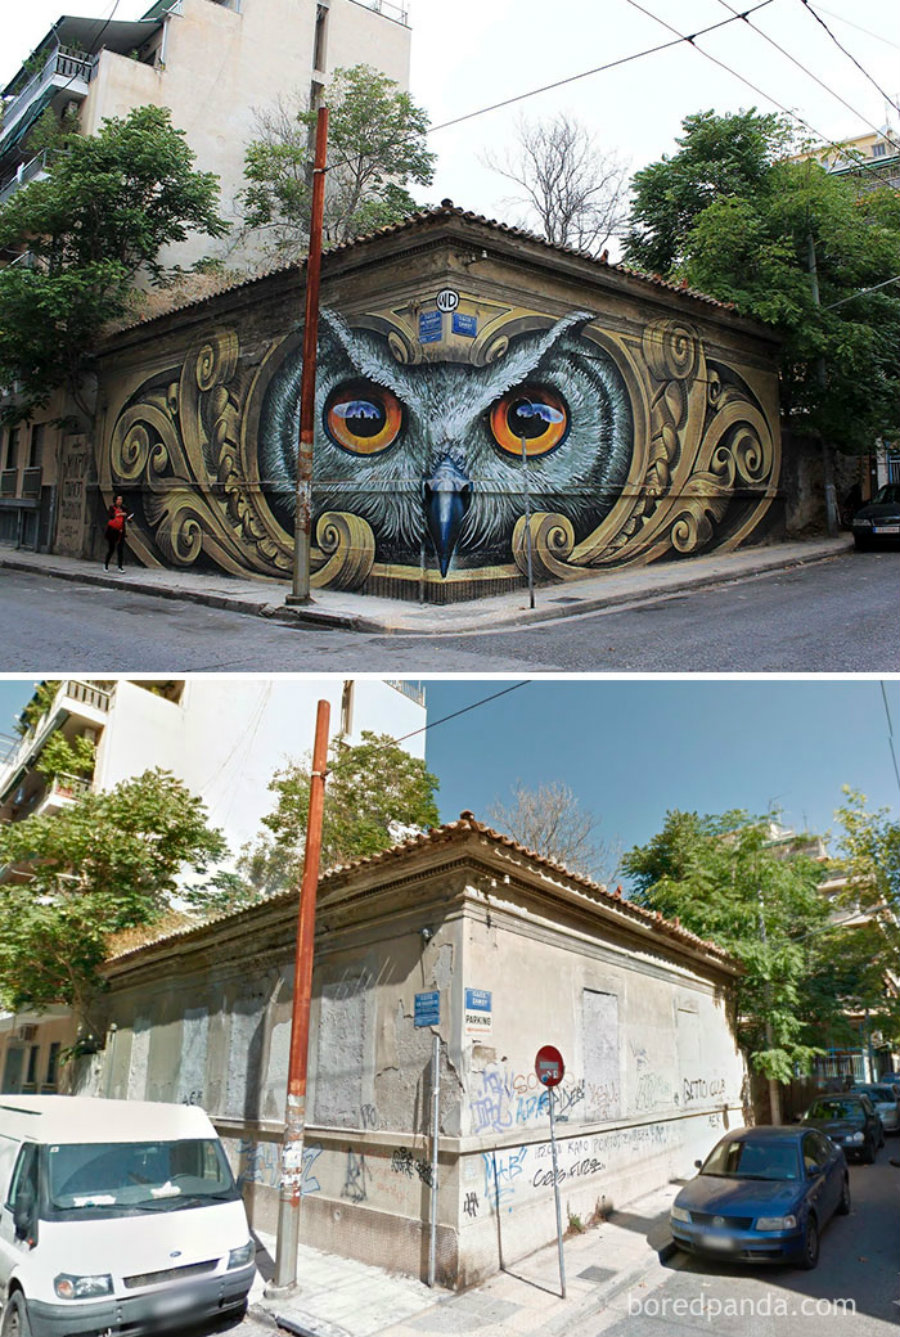 before-after-street-art-boring-wall-transformation-28-580dce4445764__700